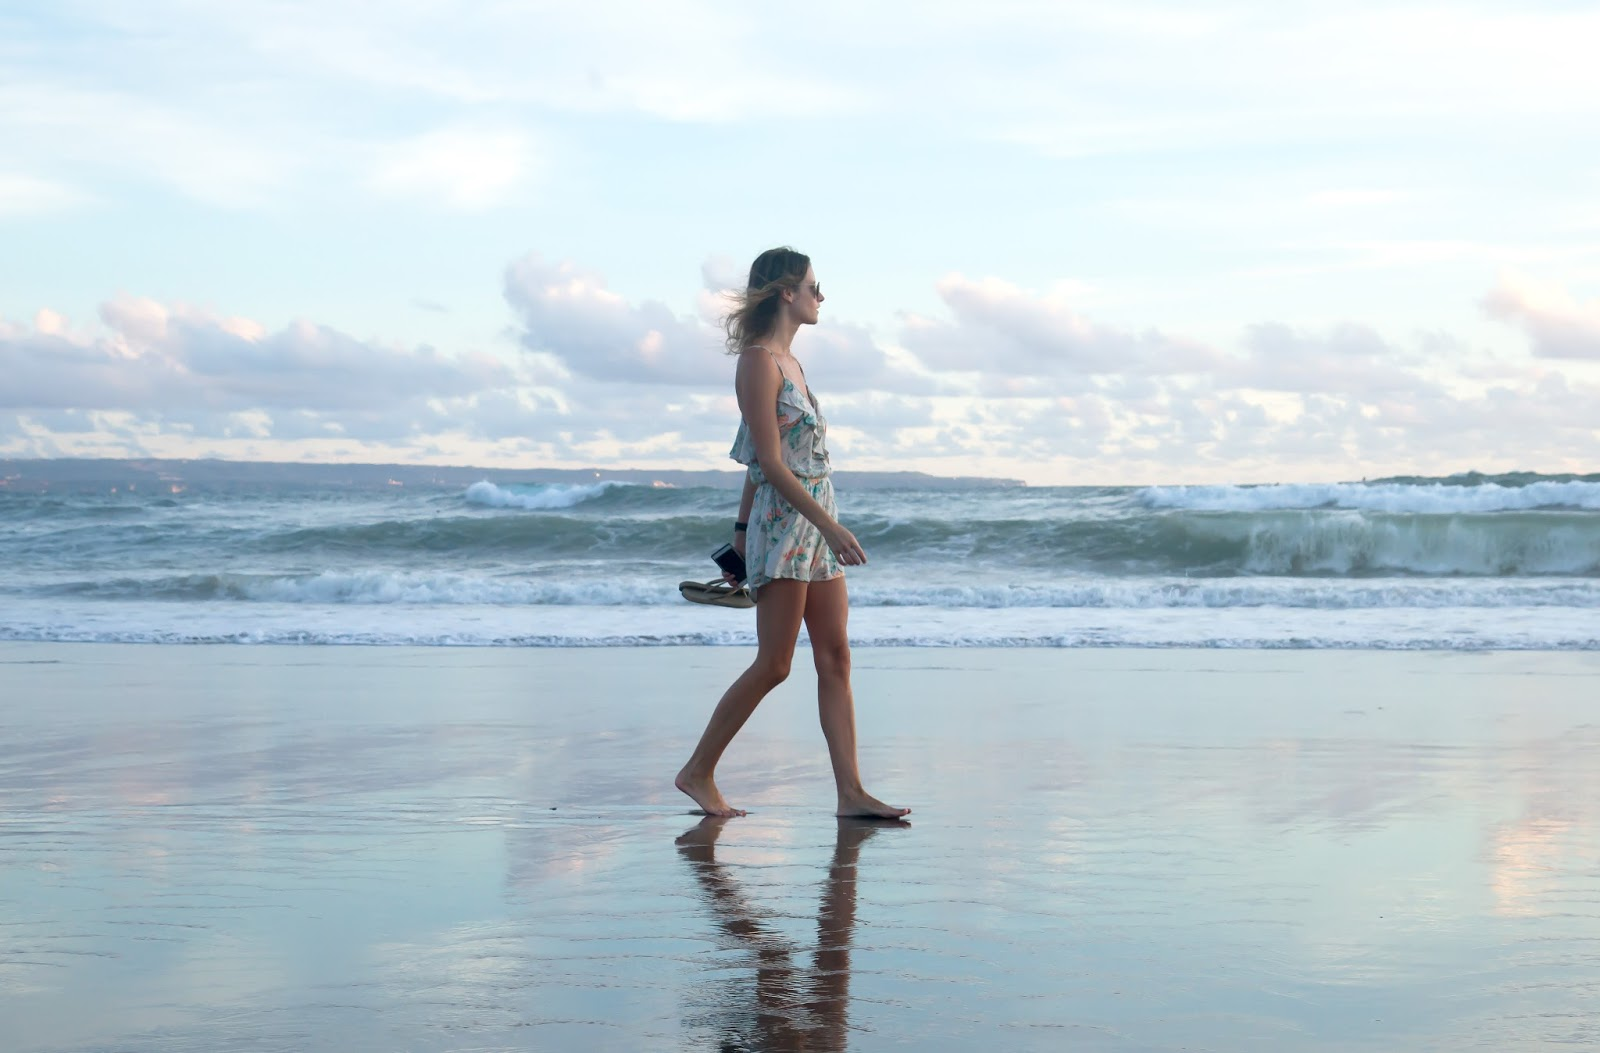 fashion and travel blogger, Alison Hutchinson, is wearing a Billabong Romper on the beach in Bali